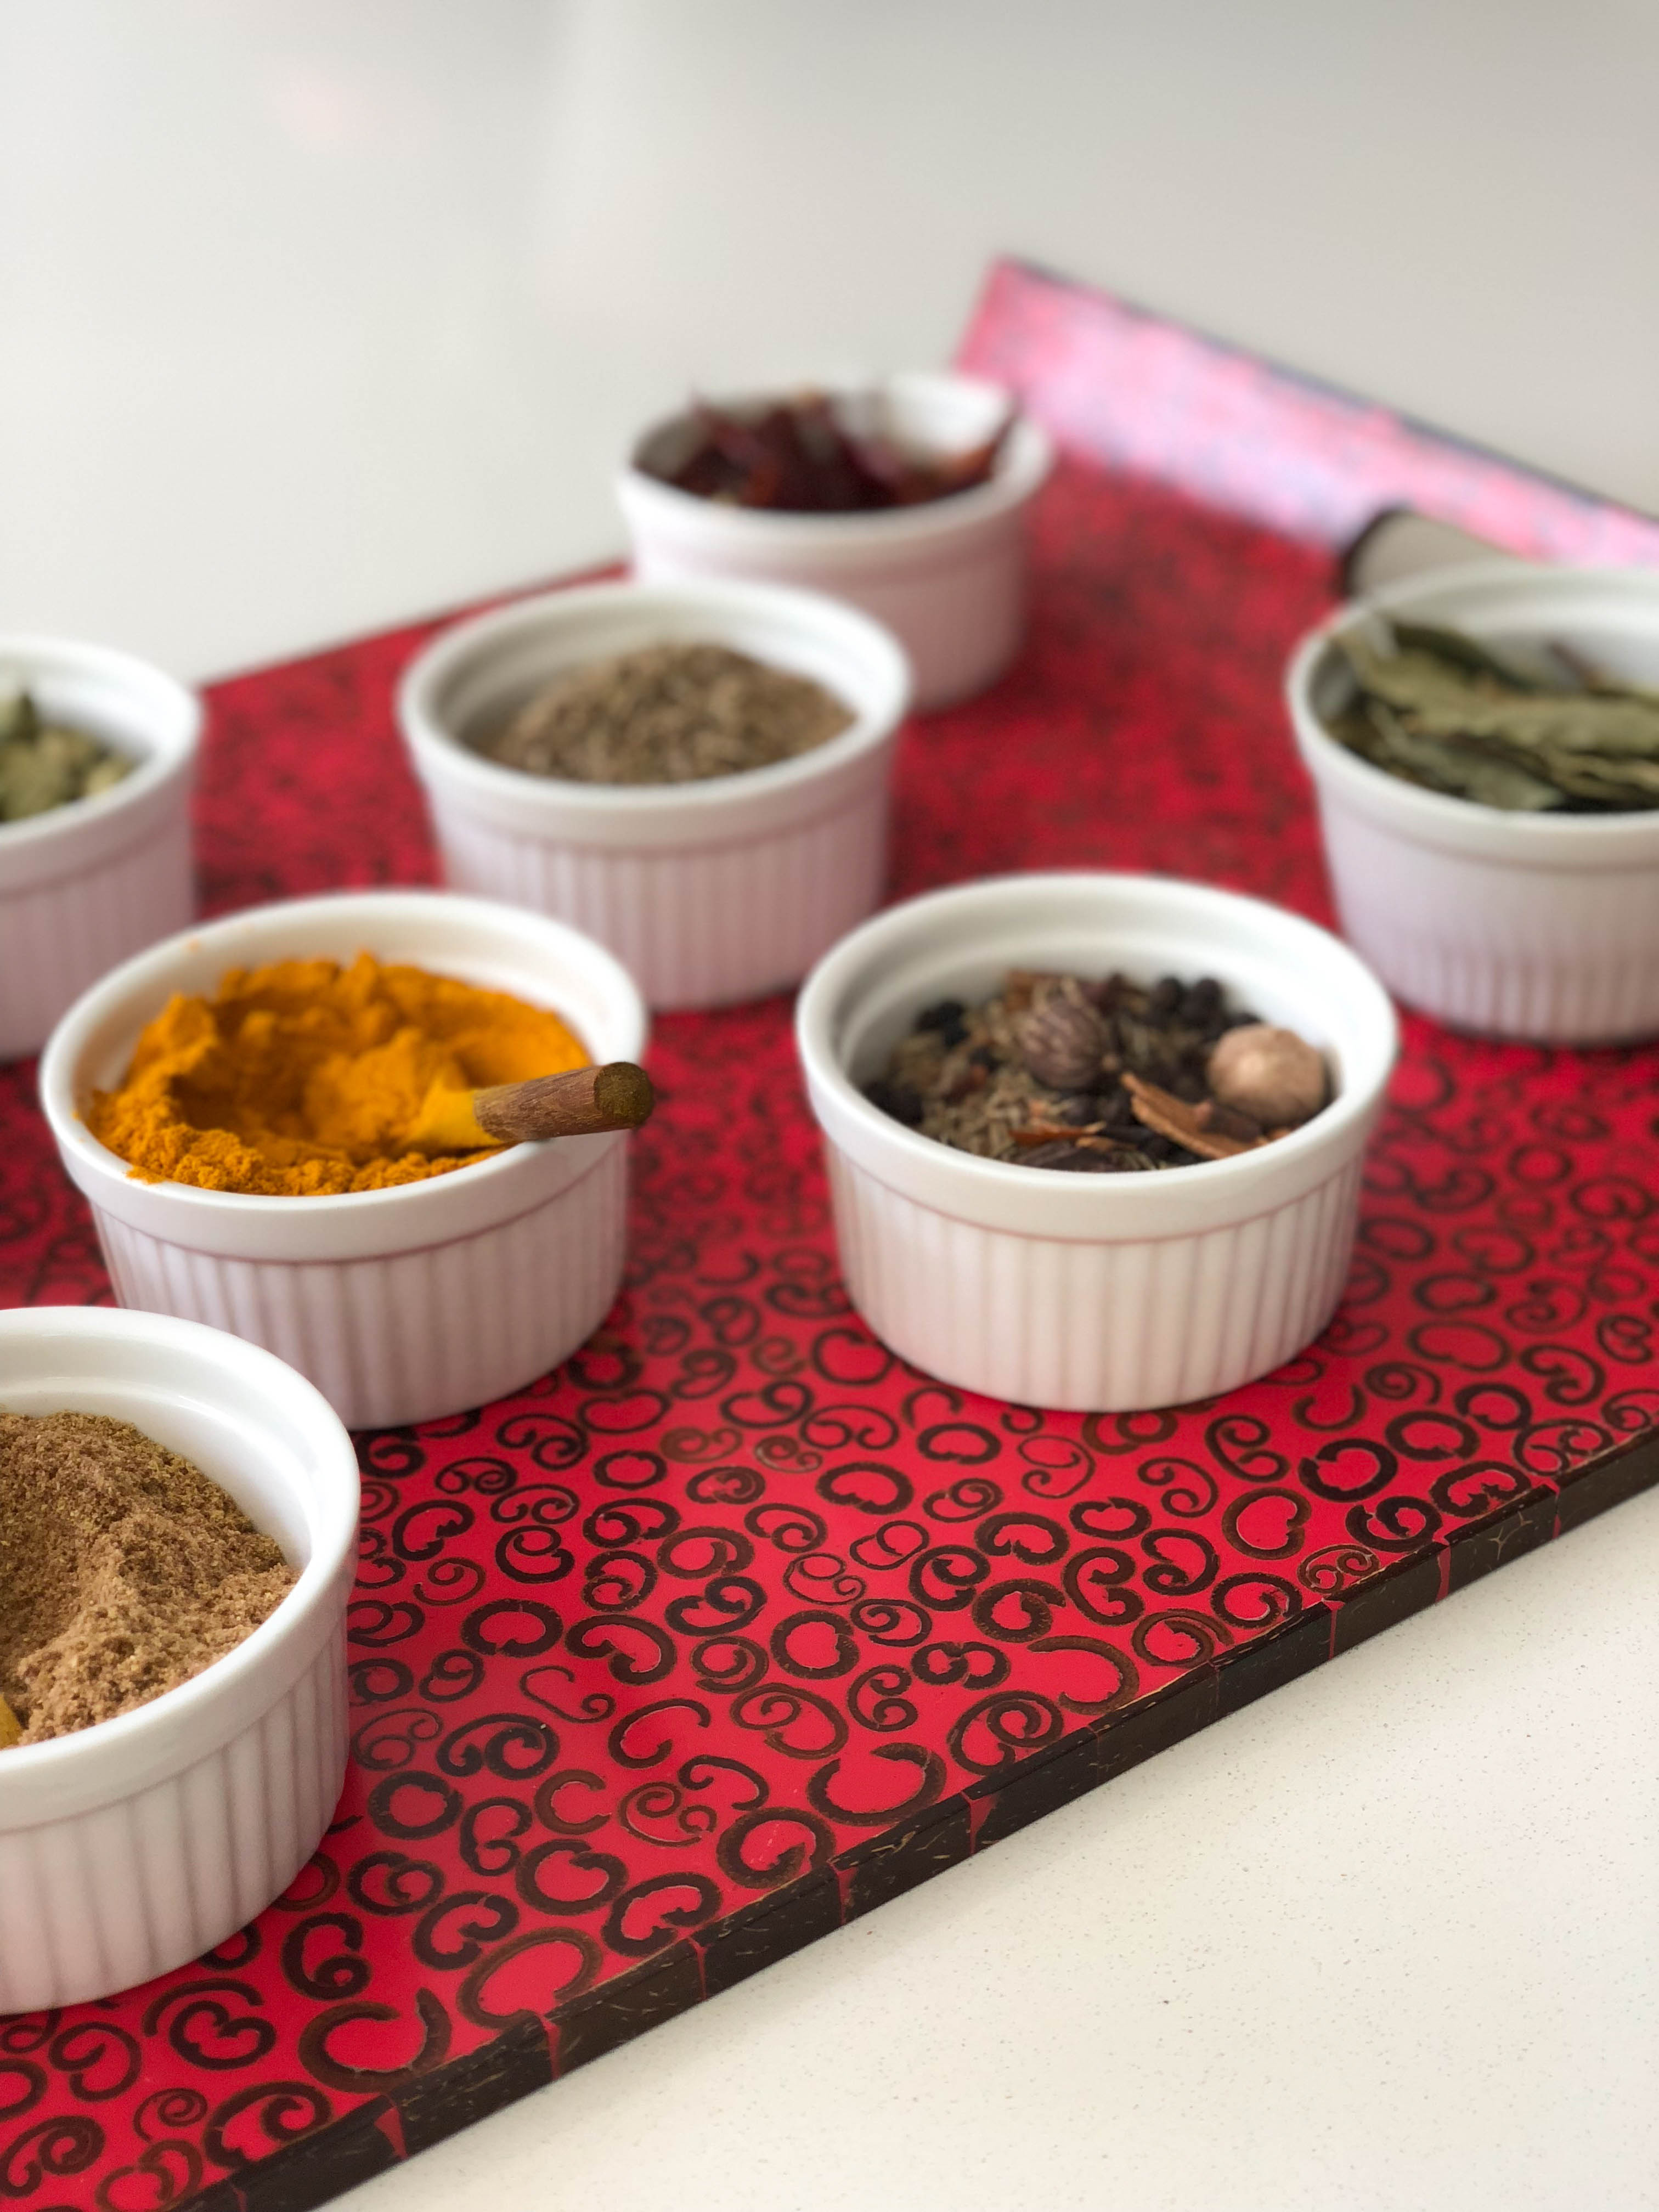 Red laquer tray with bowls of spices, Deepa Mer nutritionist